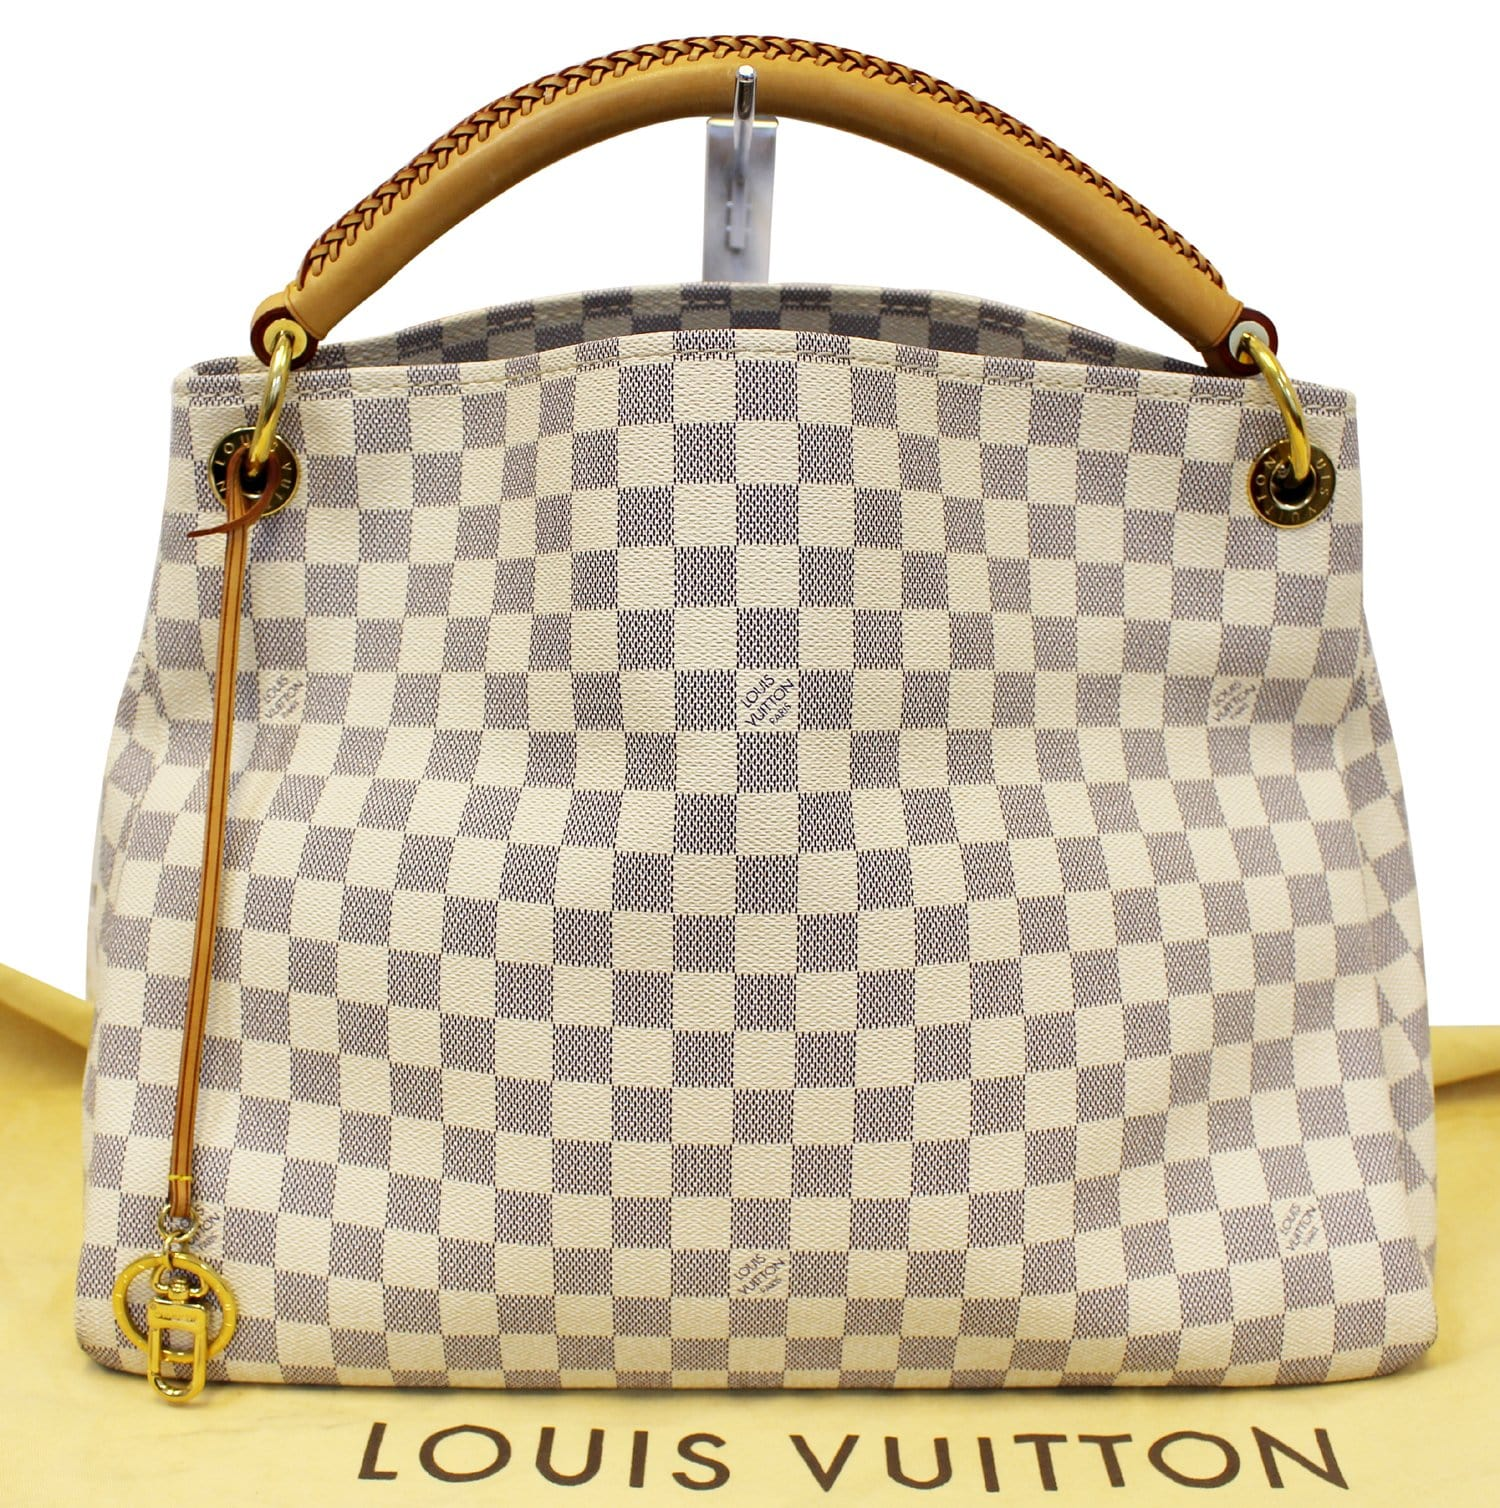 957e25117eb6 LOUIS VUITTON Damier Azur Artsy MM Shoulder Tote Bag